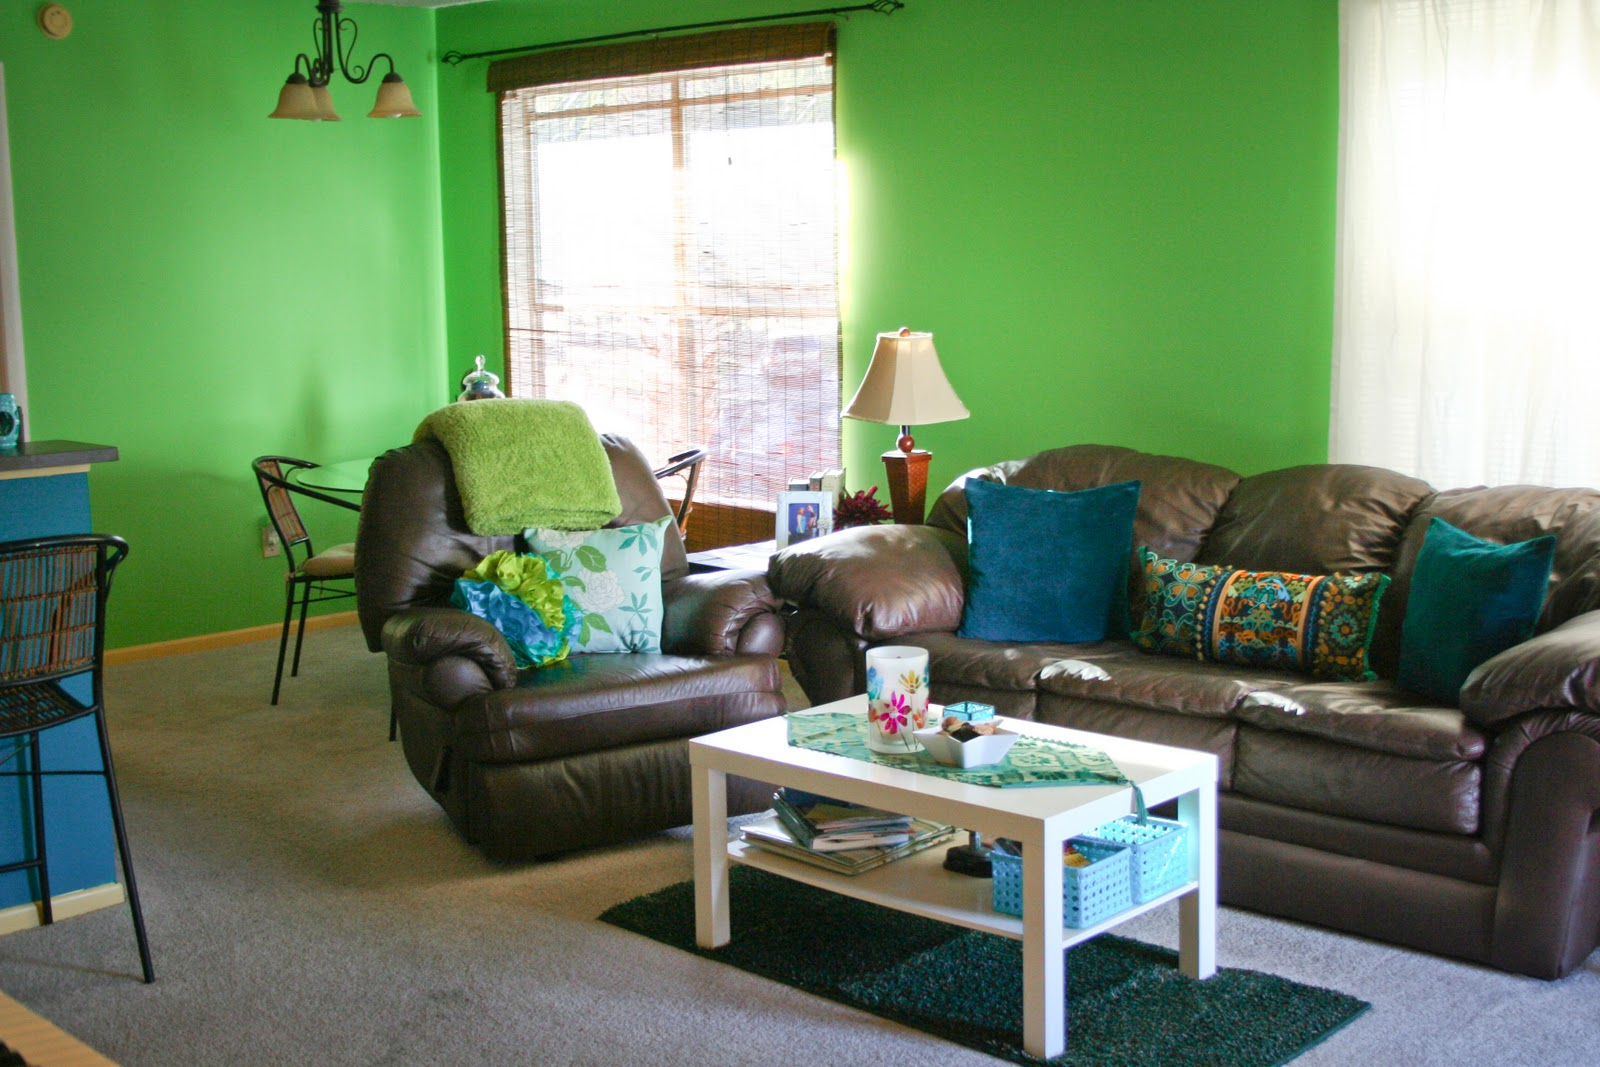 teal green living room from hightops to flatlands the green amp teal living room 13364